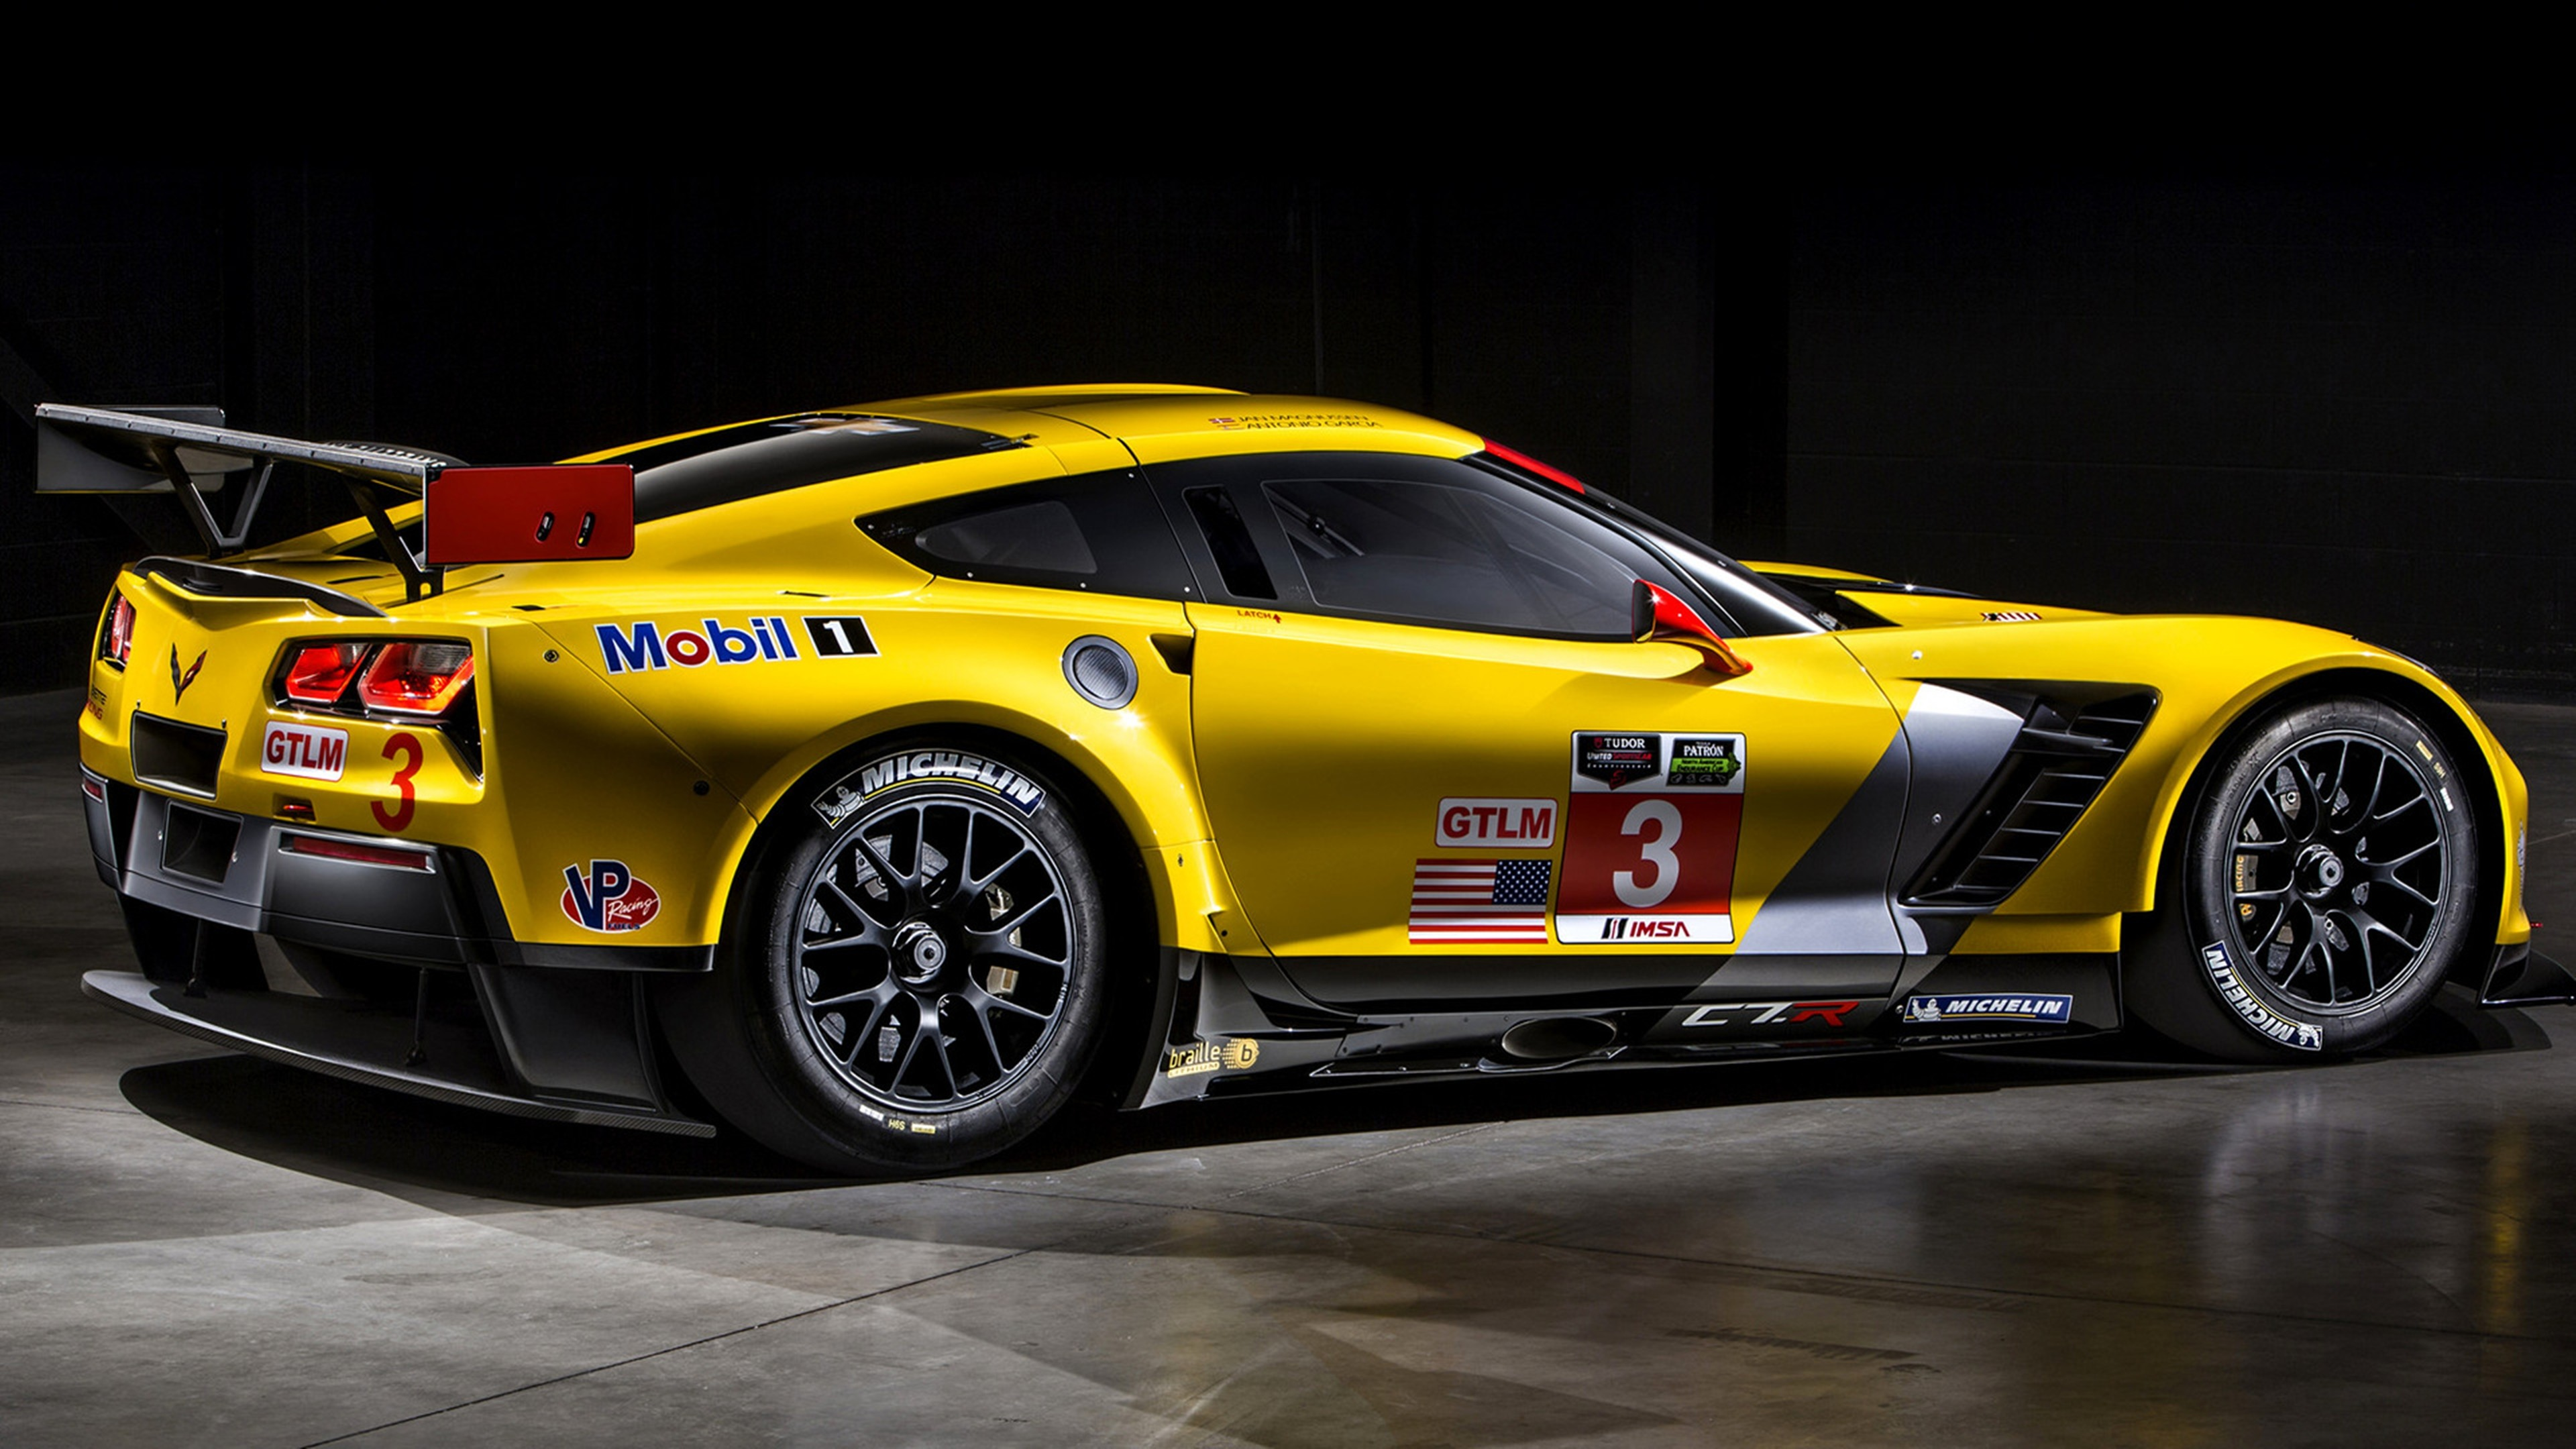 3840x2160 Vehicles - Chevrolet Corvette C7.R Sport Car Chevrolet Corvette Vehicle Car  Yellow Car Chevrolet